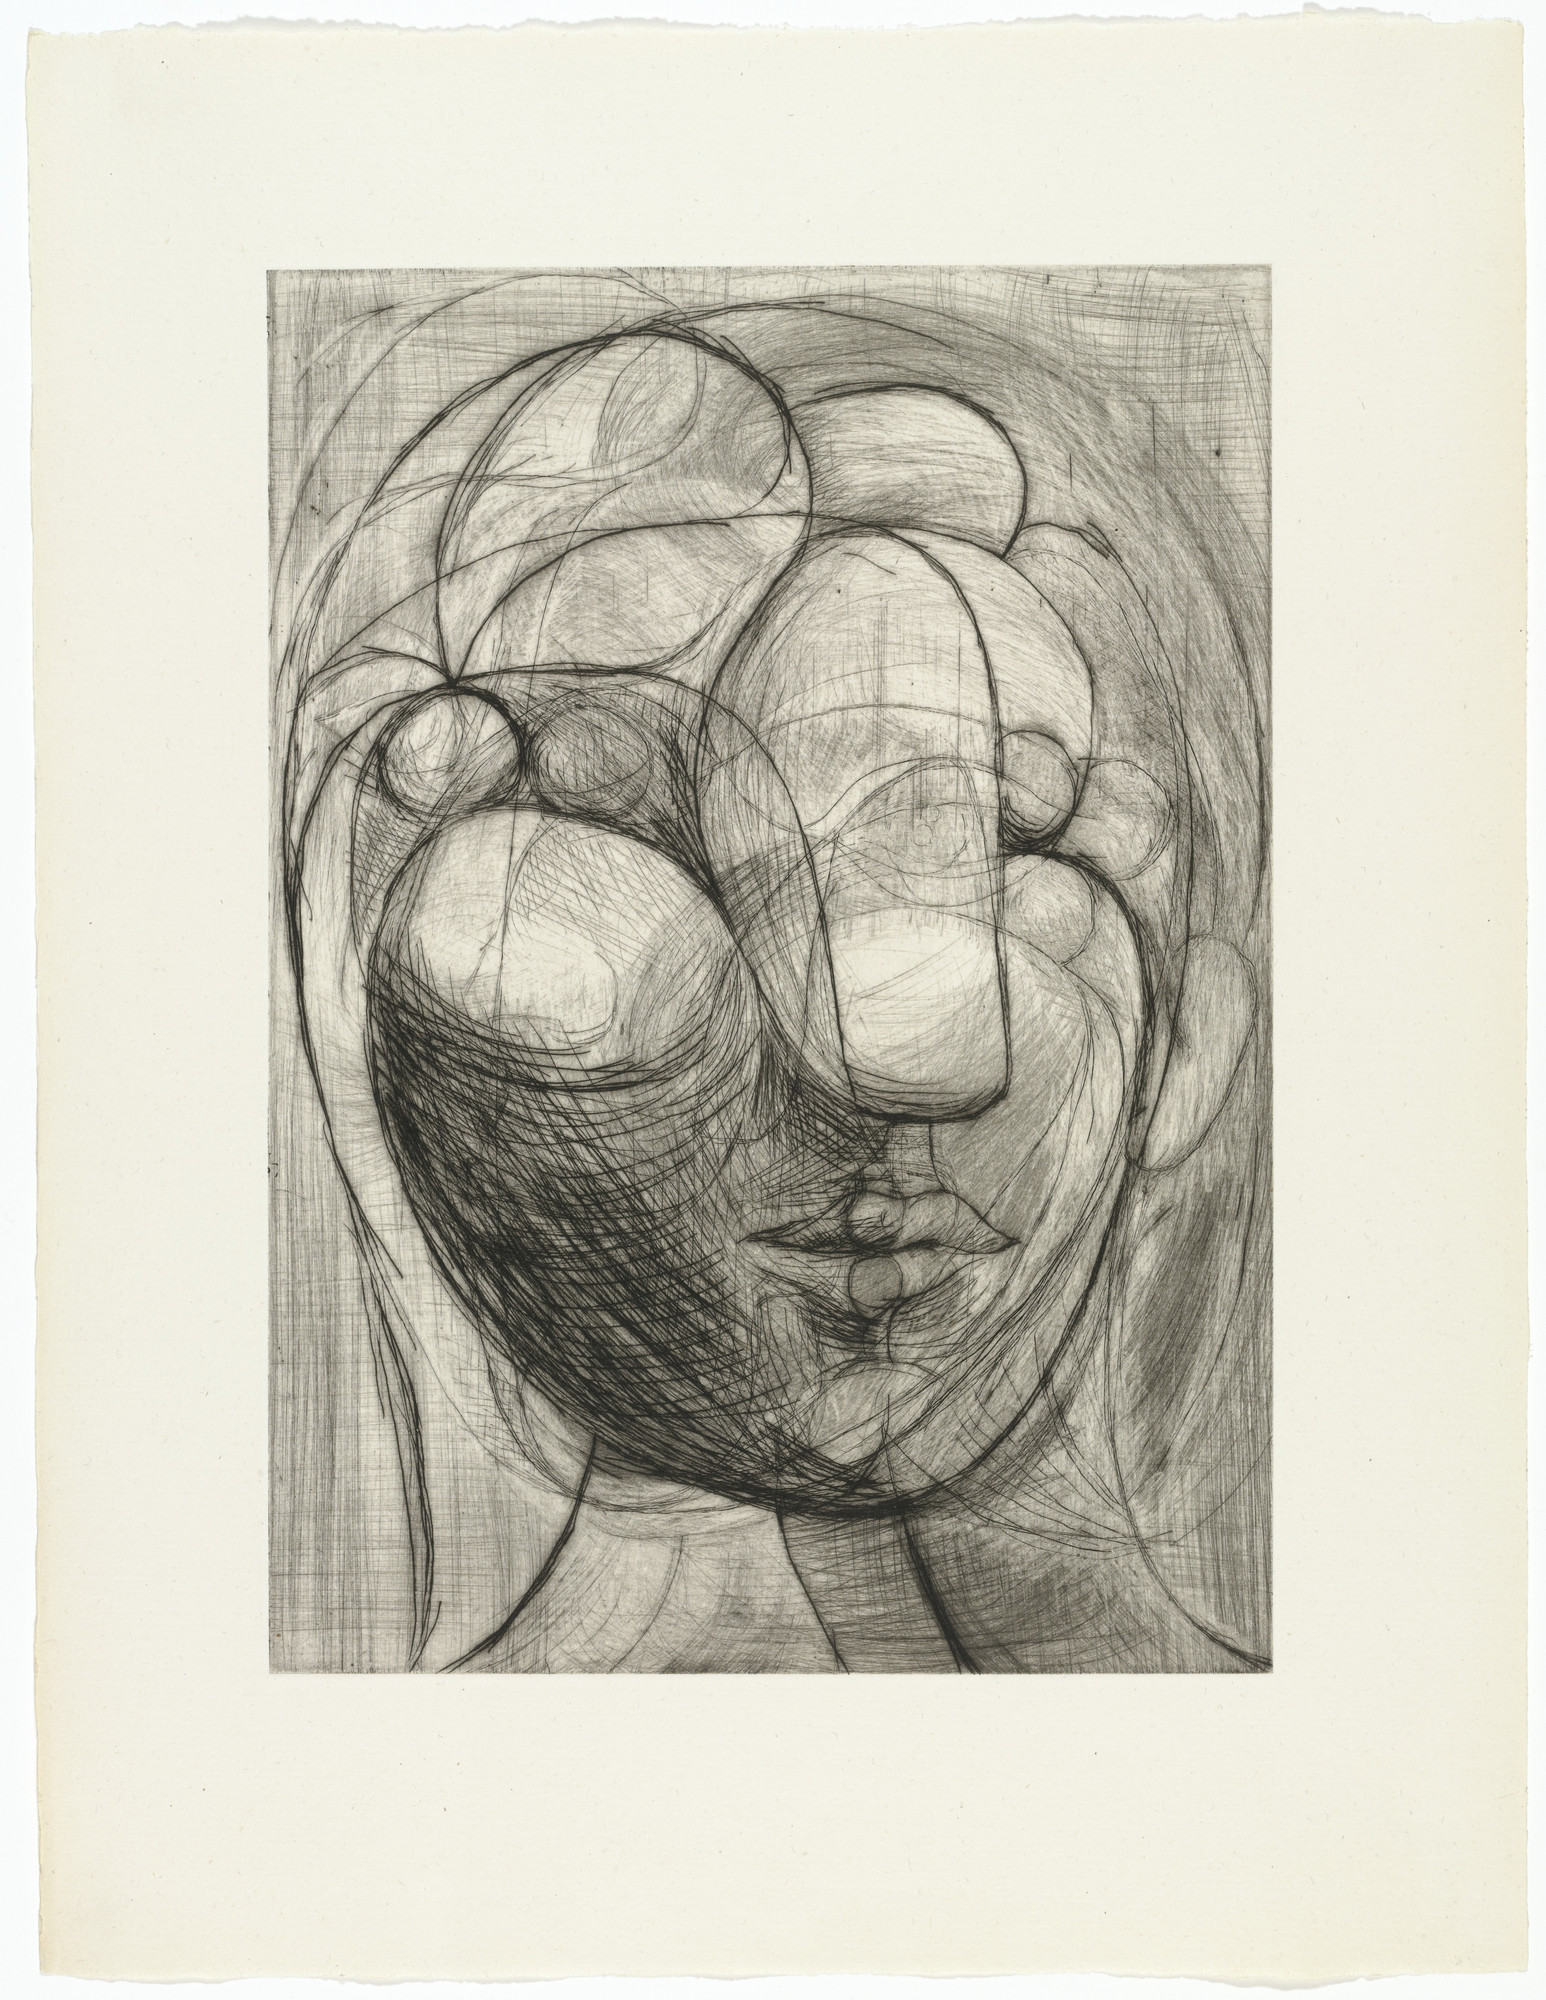 Pablo Picasso. Sculpture: Head of Marie-Thérèse (Sculpture. Tête de Marie-Thérèse). 1933, published 1942